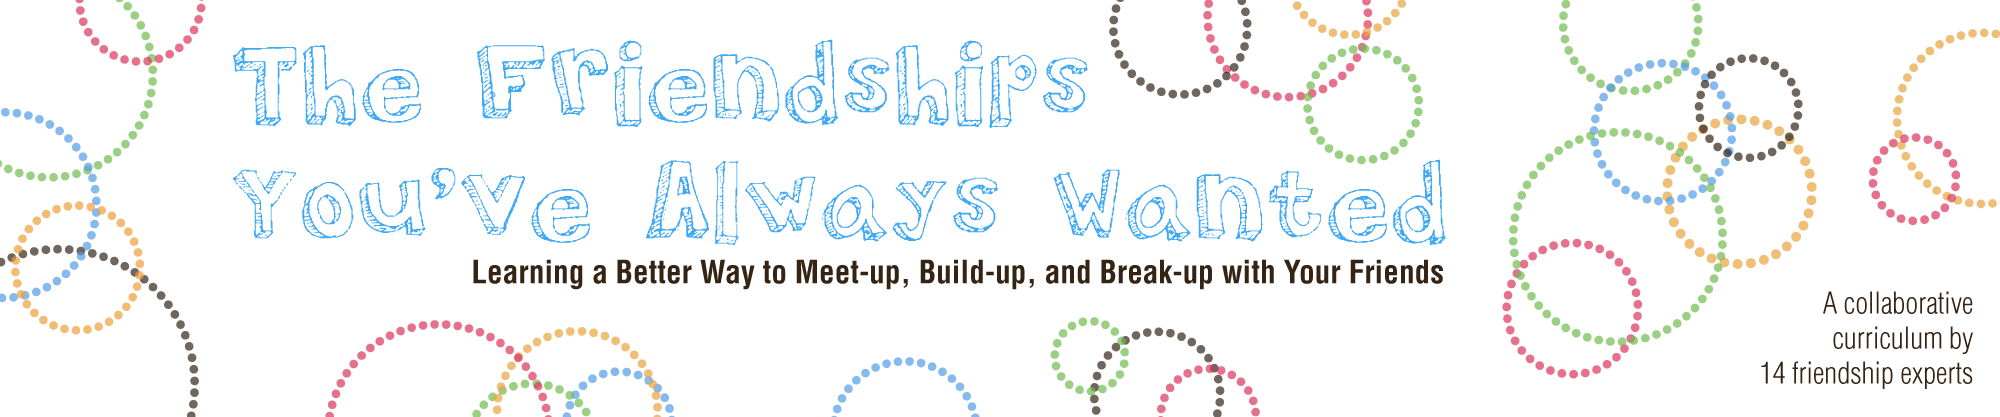 Friendships Wanted banner-01